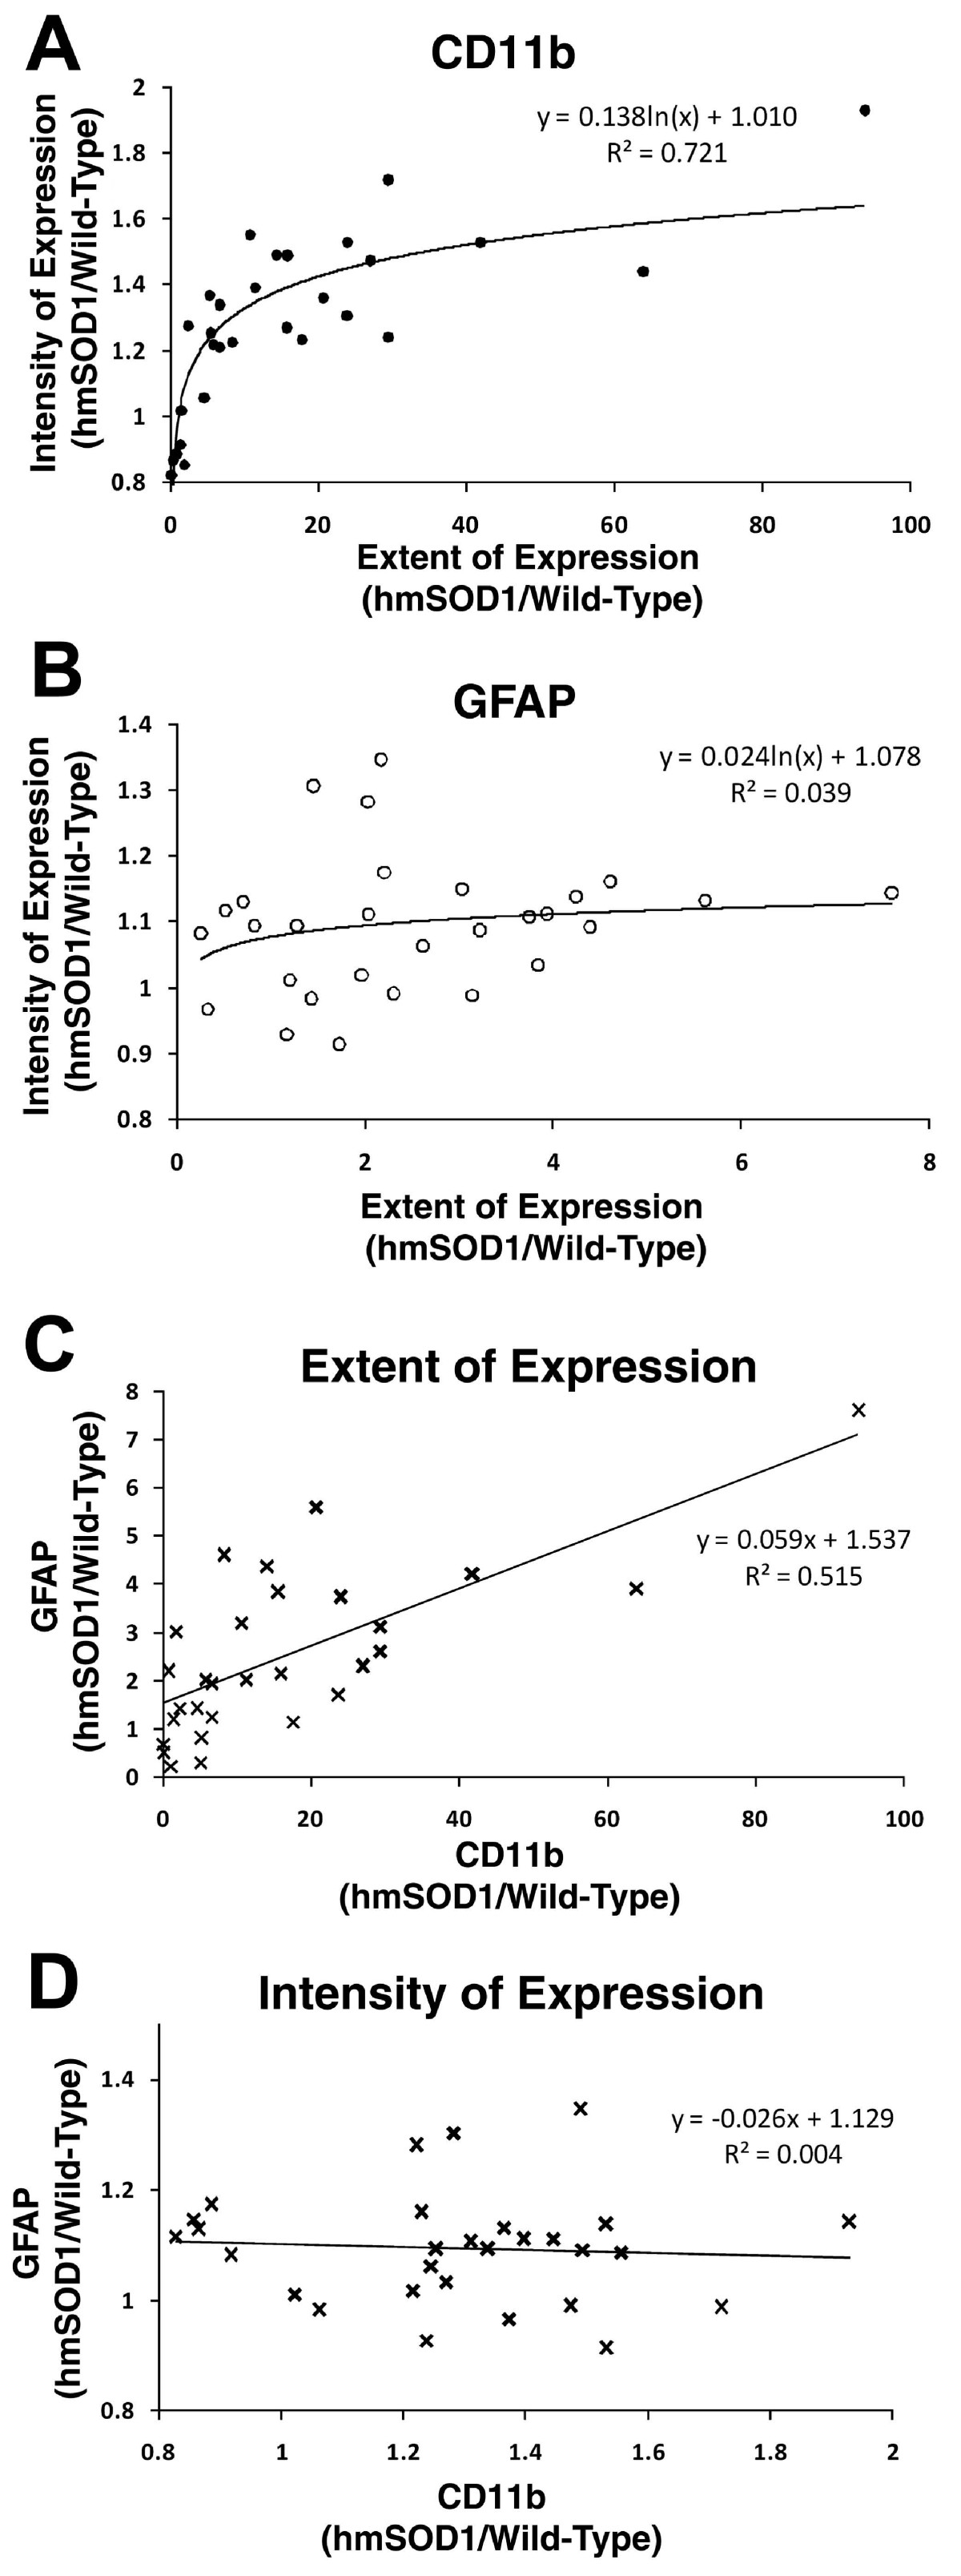 https://static-content.springer.com/image/art%3A10.1186%2F1742-2094-7-8/MediaObjects/12974_2009_Article_220_Fig6_HTML.jpg